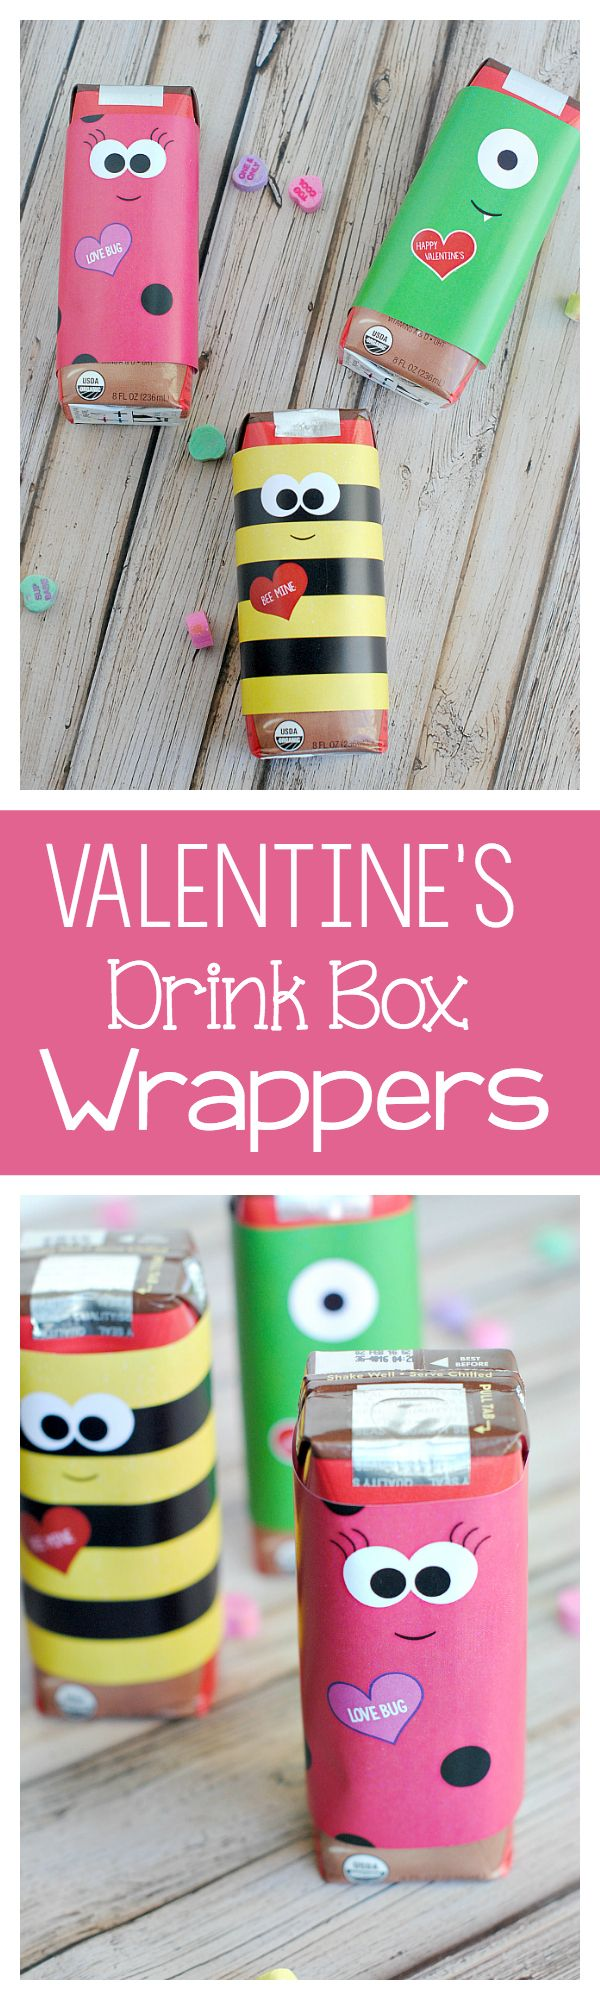 Cute Valentine's Drink Box Wrappers-Perfect for a party! Just print and wrap!